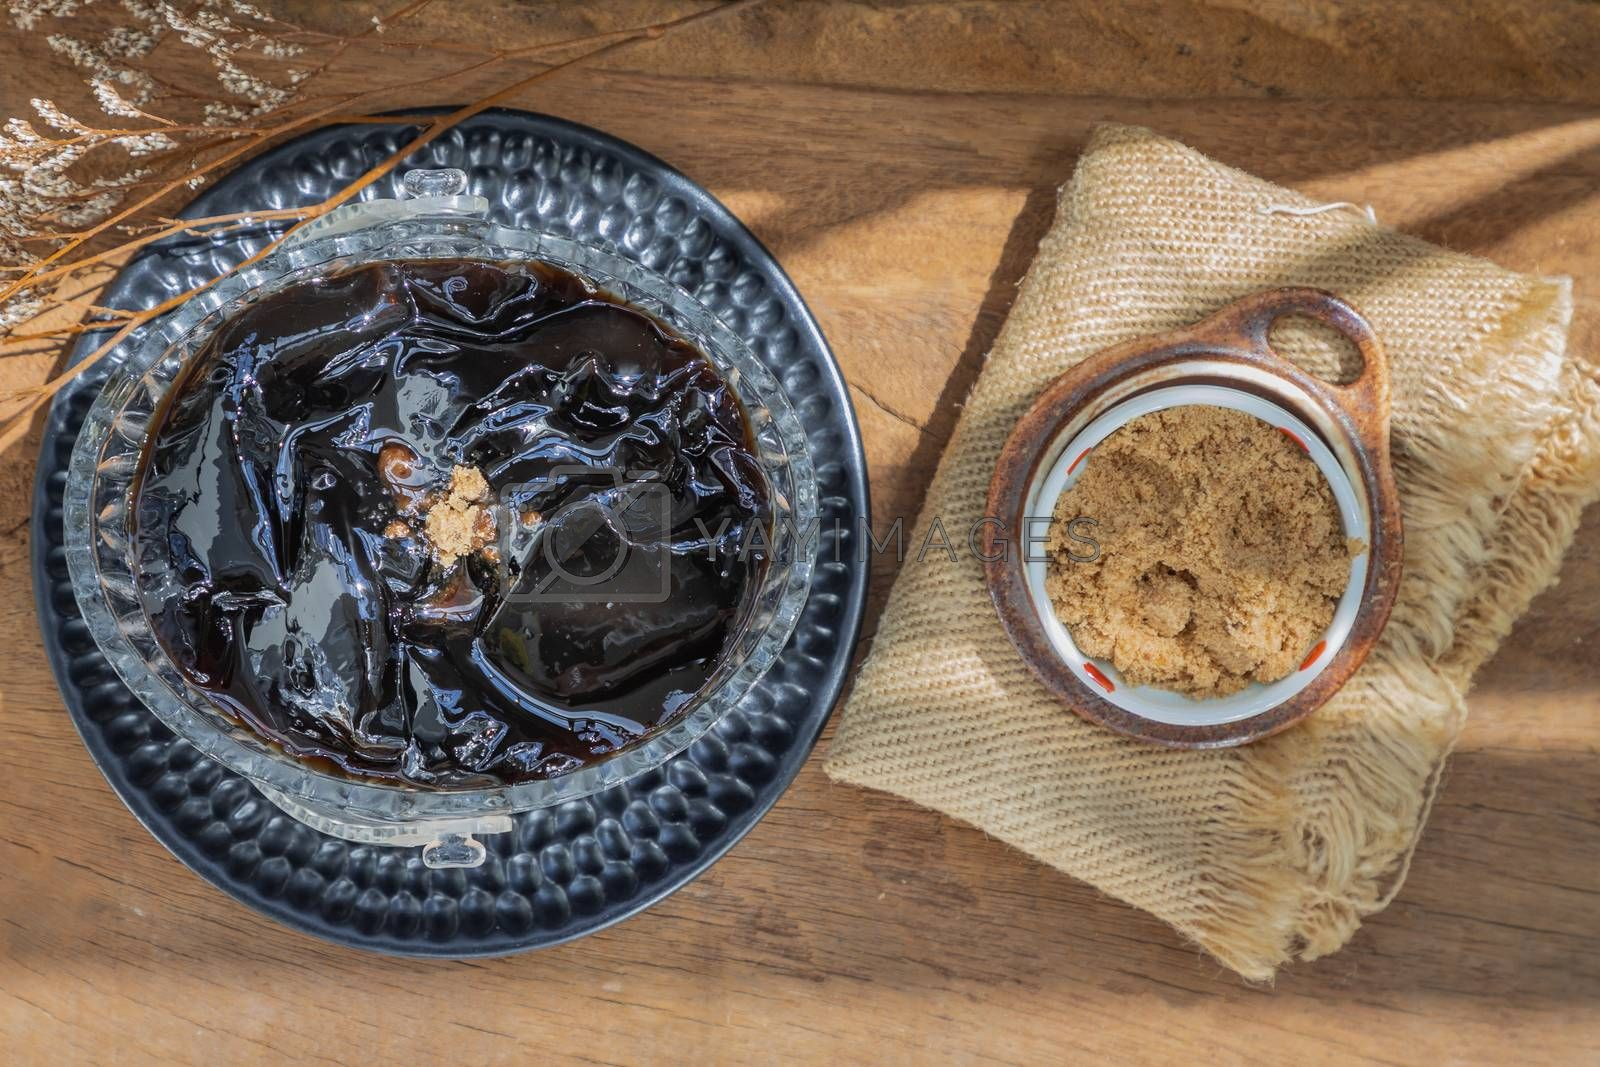 Black grass jelly (Mesona chinensis) Dessert herbal gelatin or jelly black with ice and brown sugar on the wooden background. Sweet delicious dessert chinese style.